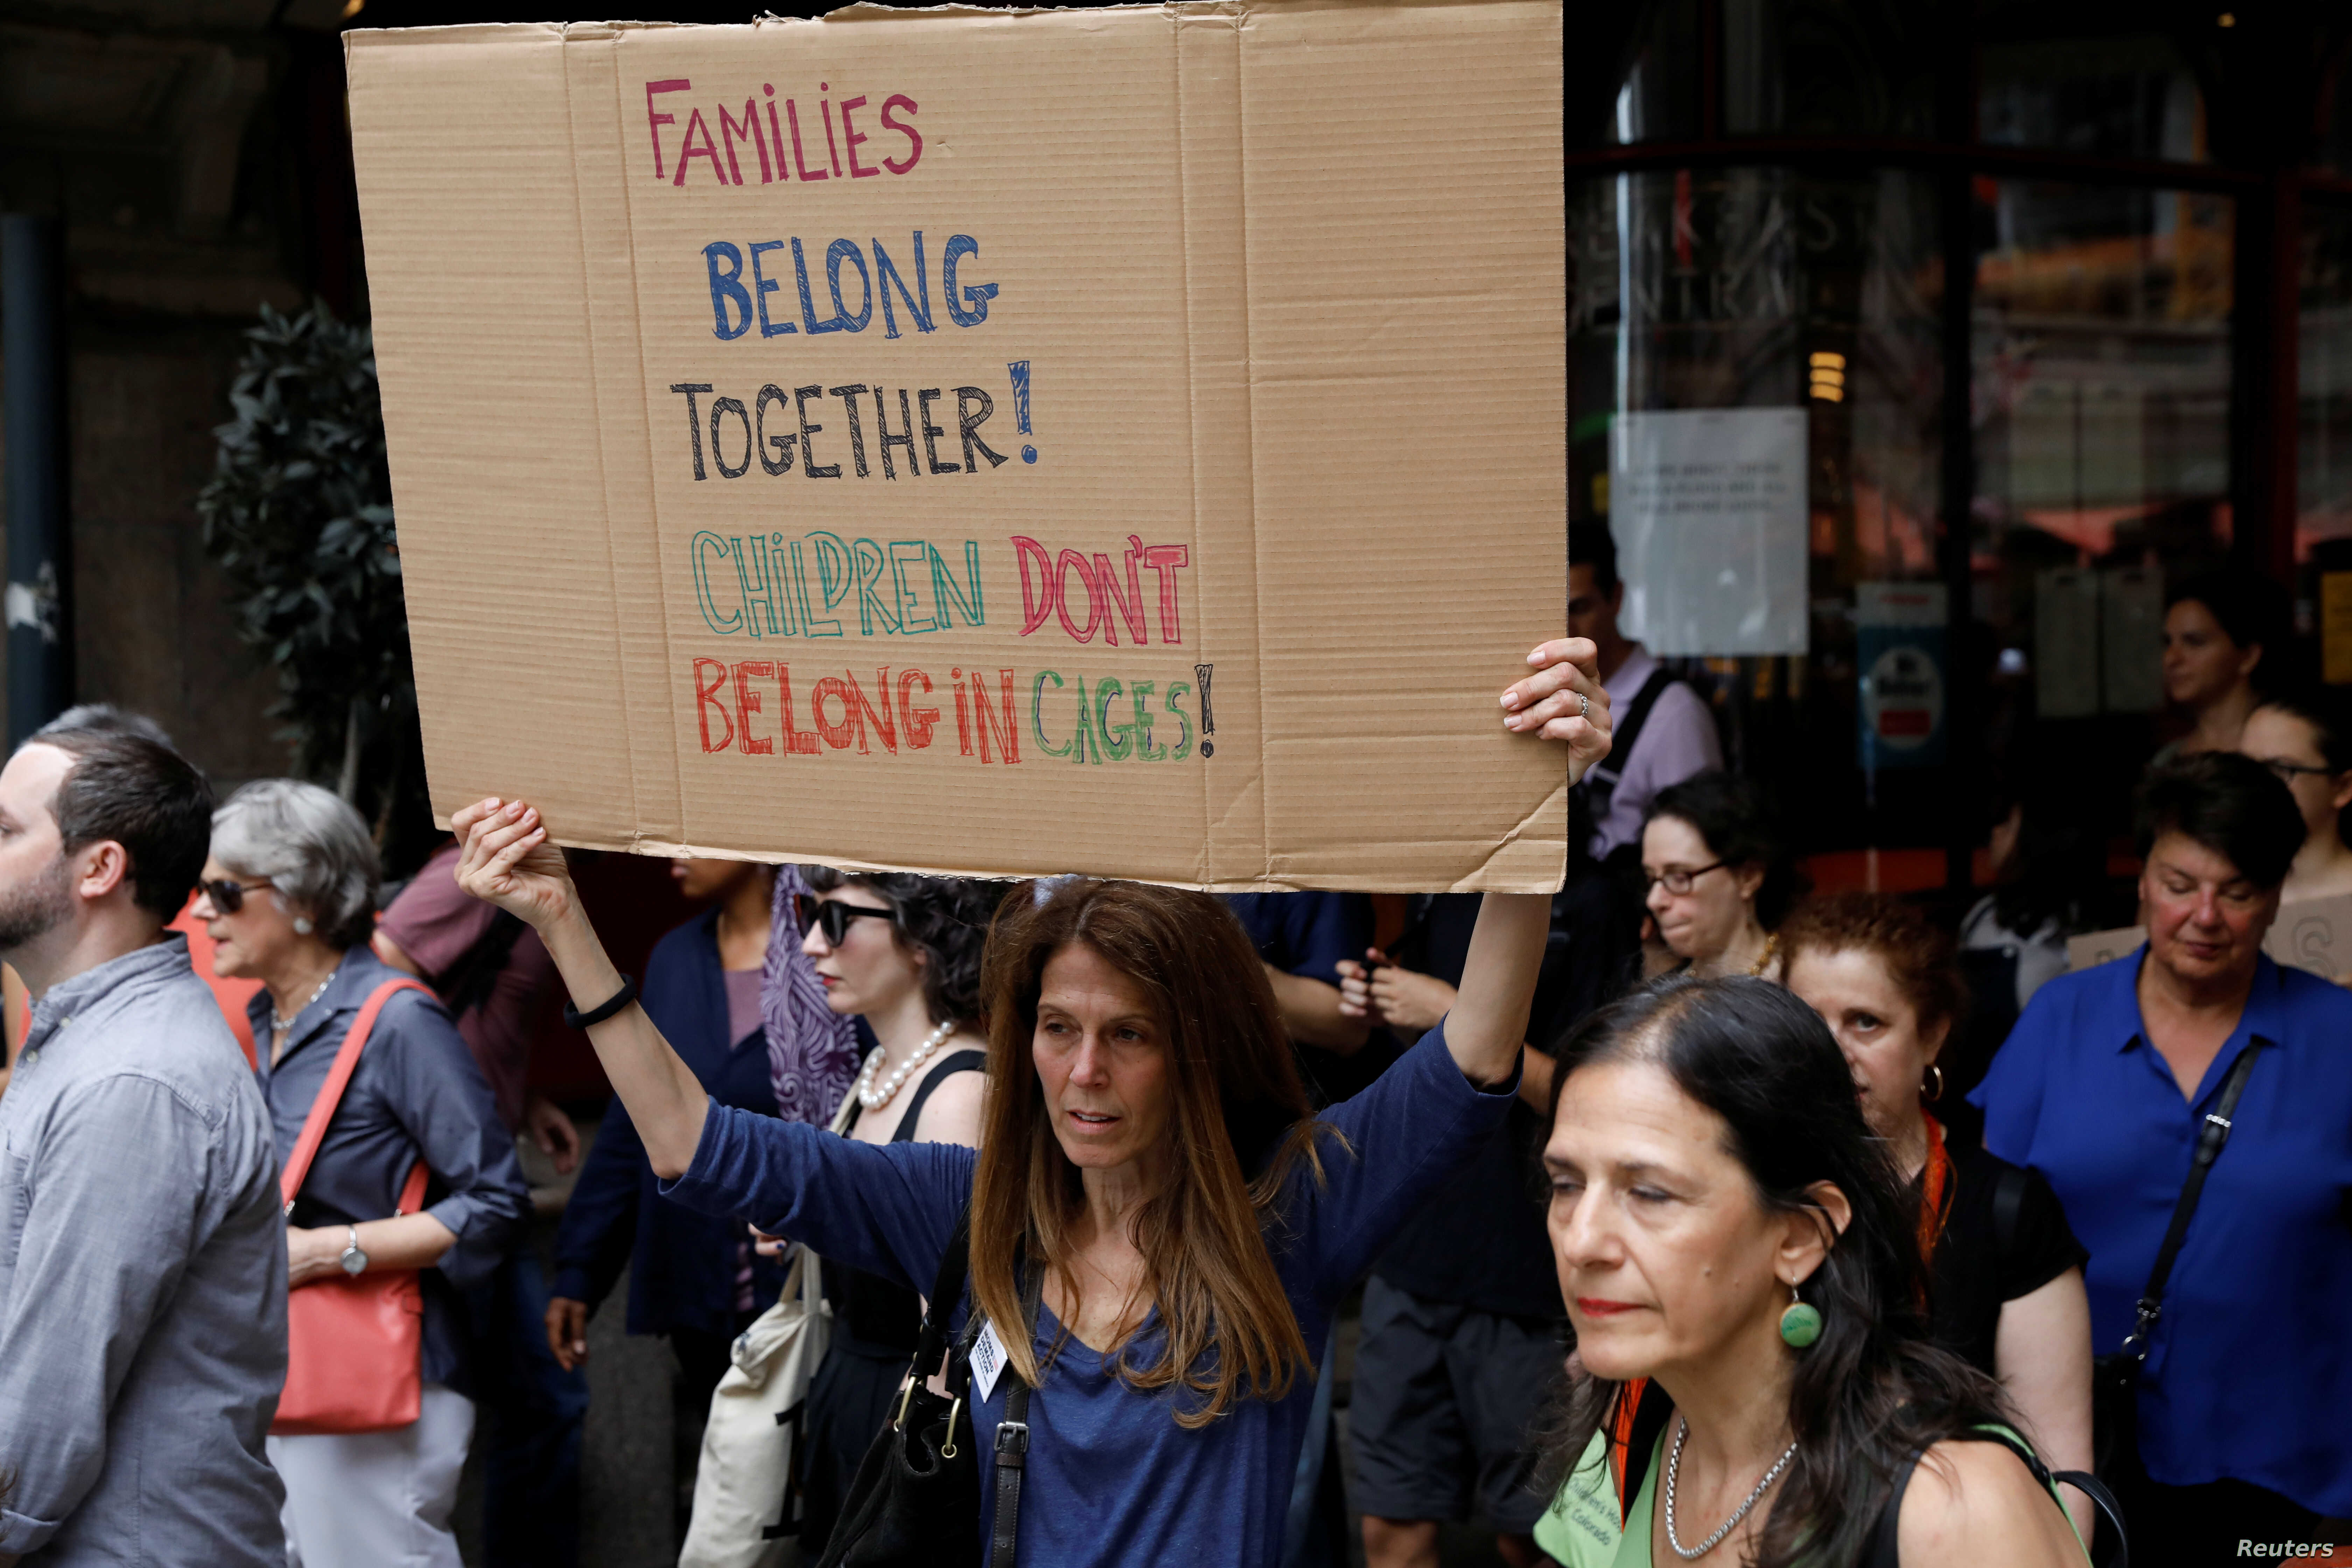 People protest against the Trump administration policy of separating immigrant families suspected of illegal entry, in New York, June 20, 2018.